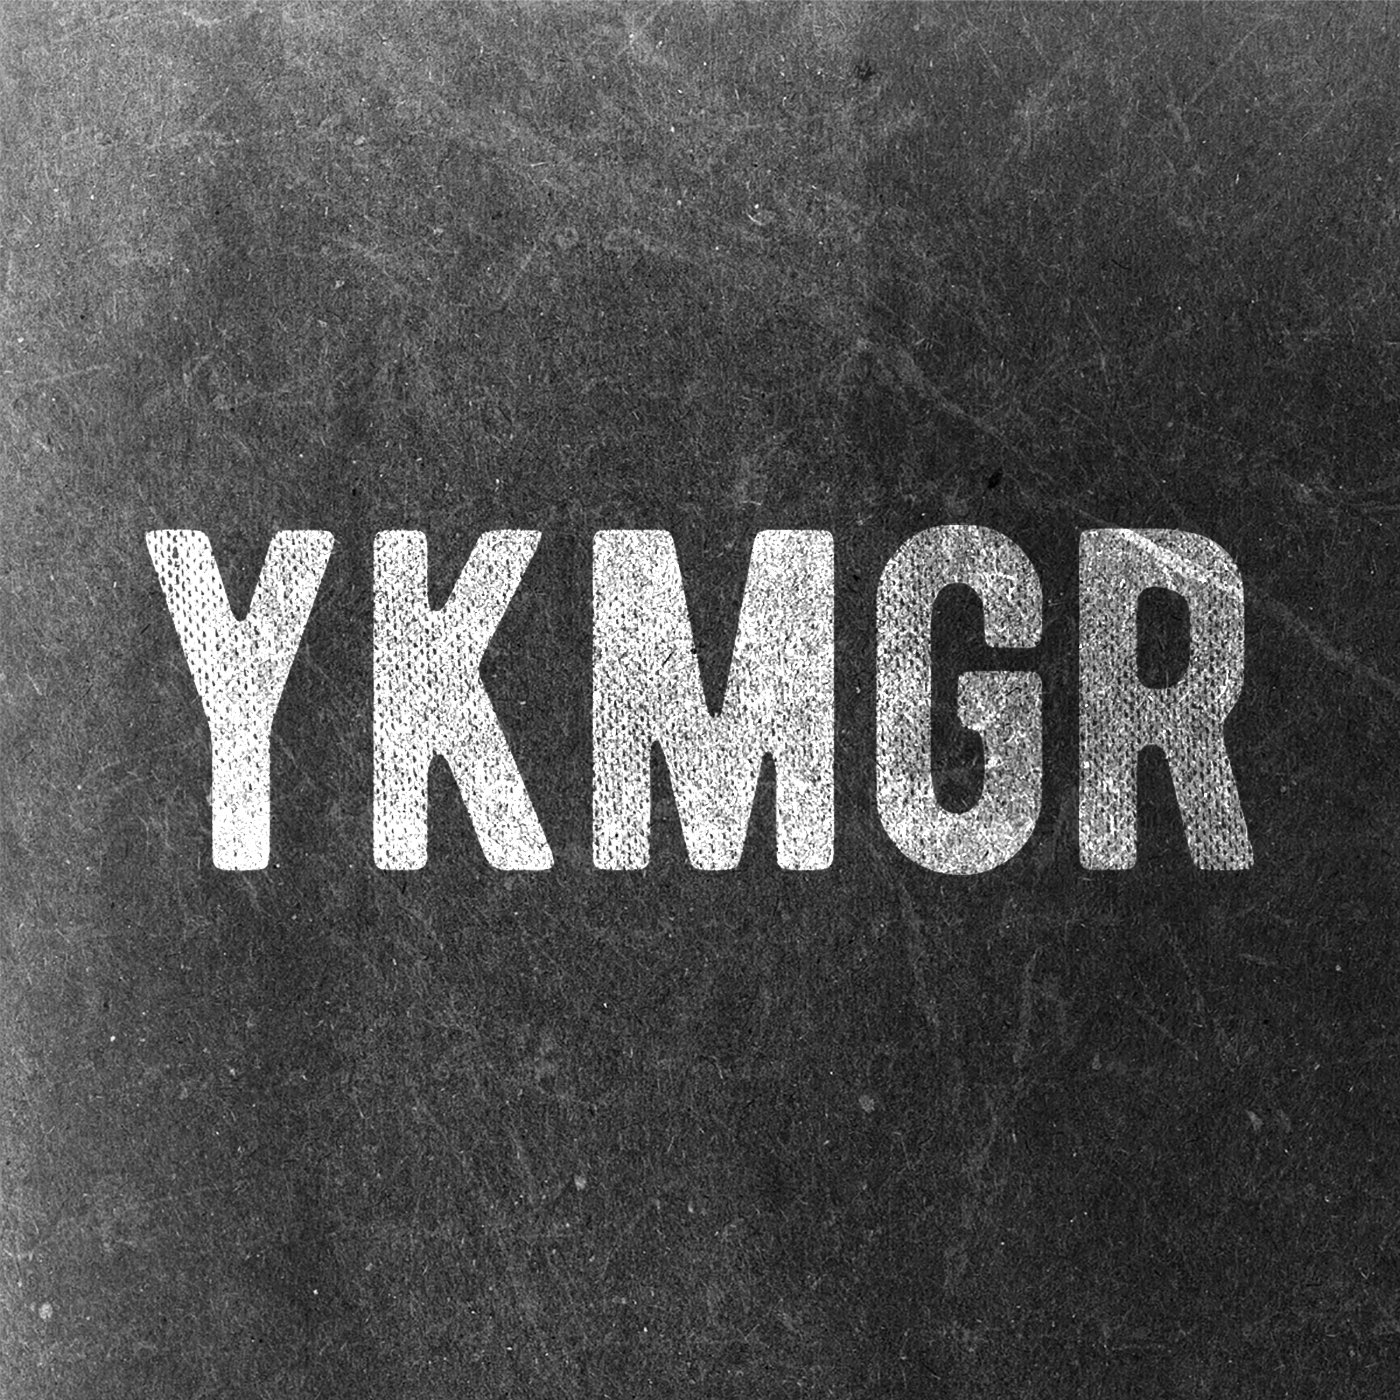 YKMGR.png